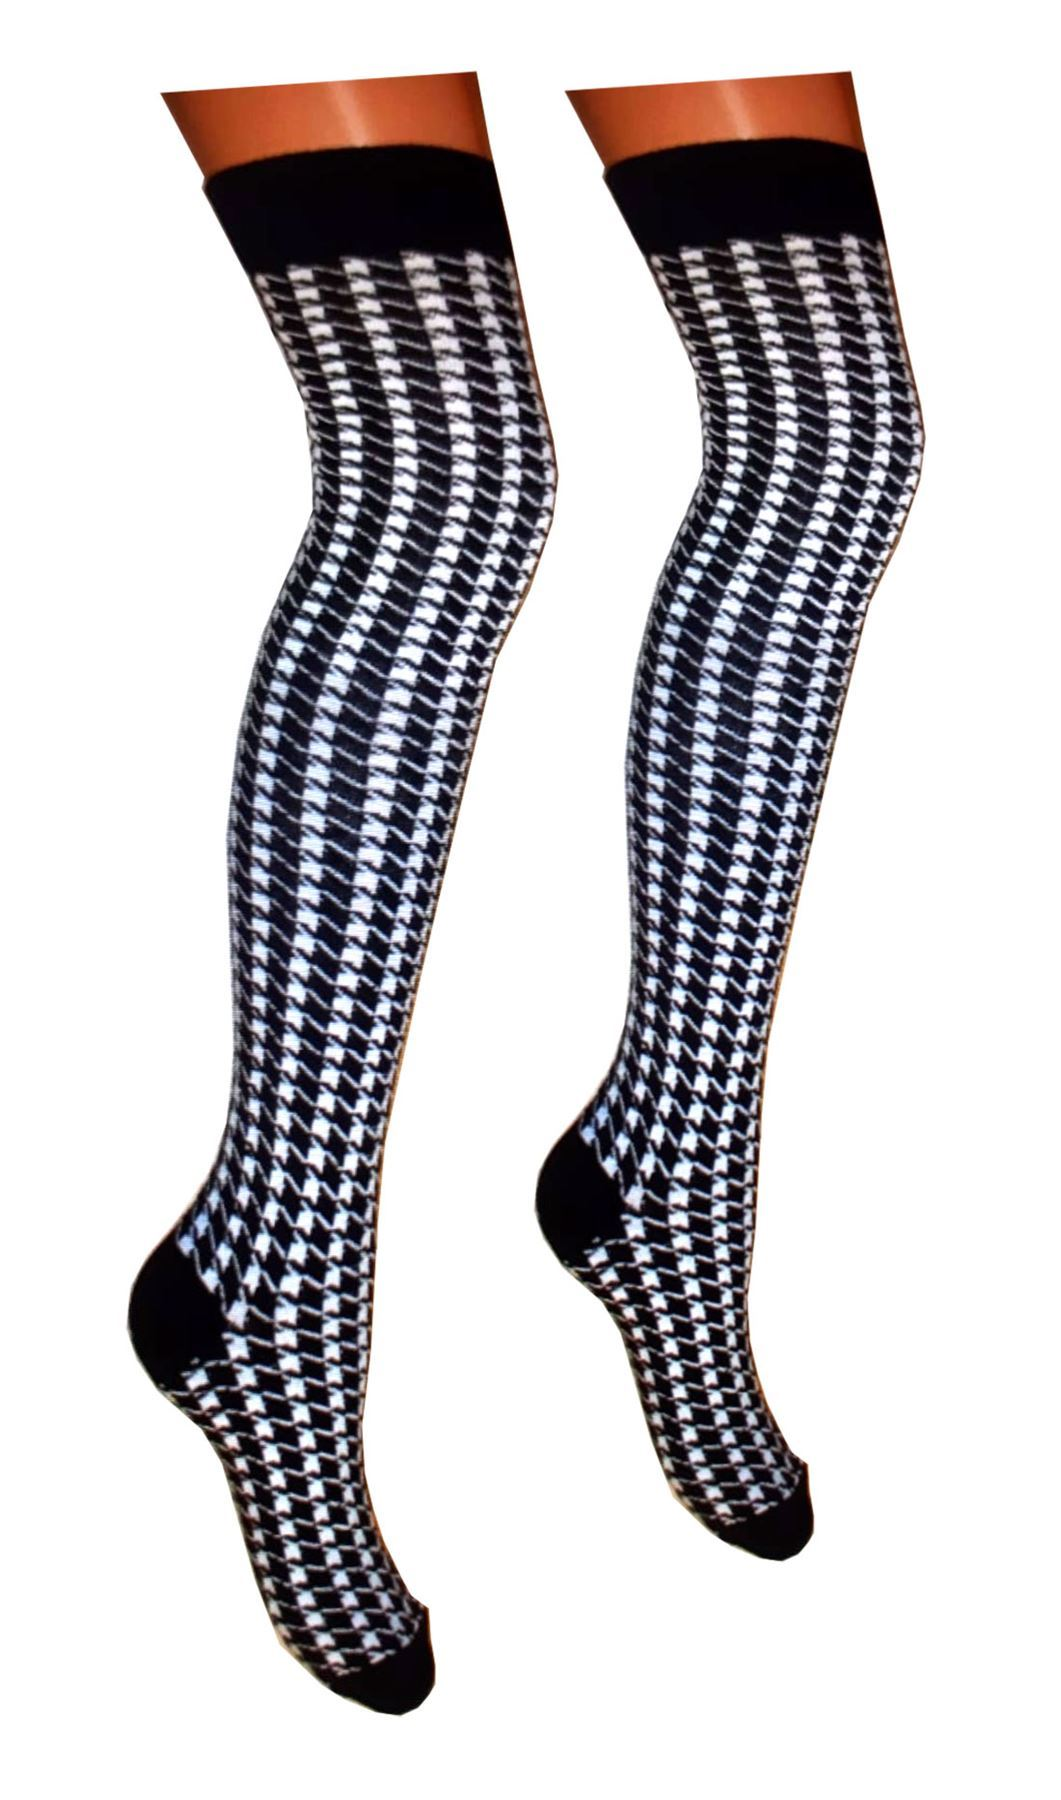 Womens-Over-The-Knee-Thigh-High-Fancy-Socks-Ladies-Plain-Casual-Wear-OTK-Socks thumbnail 40